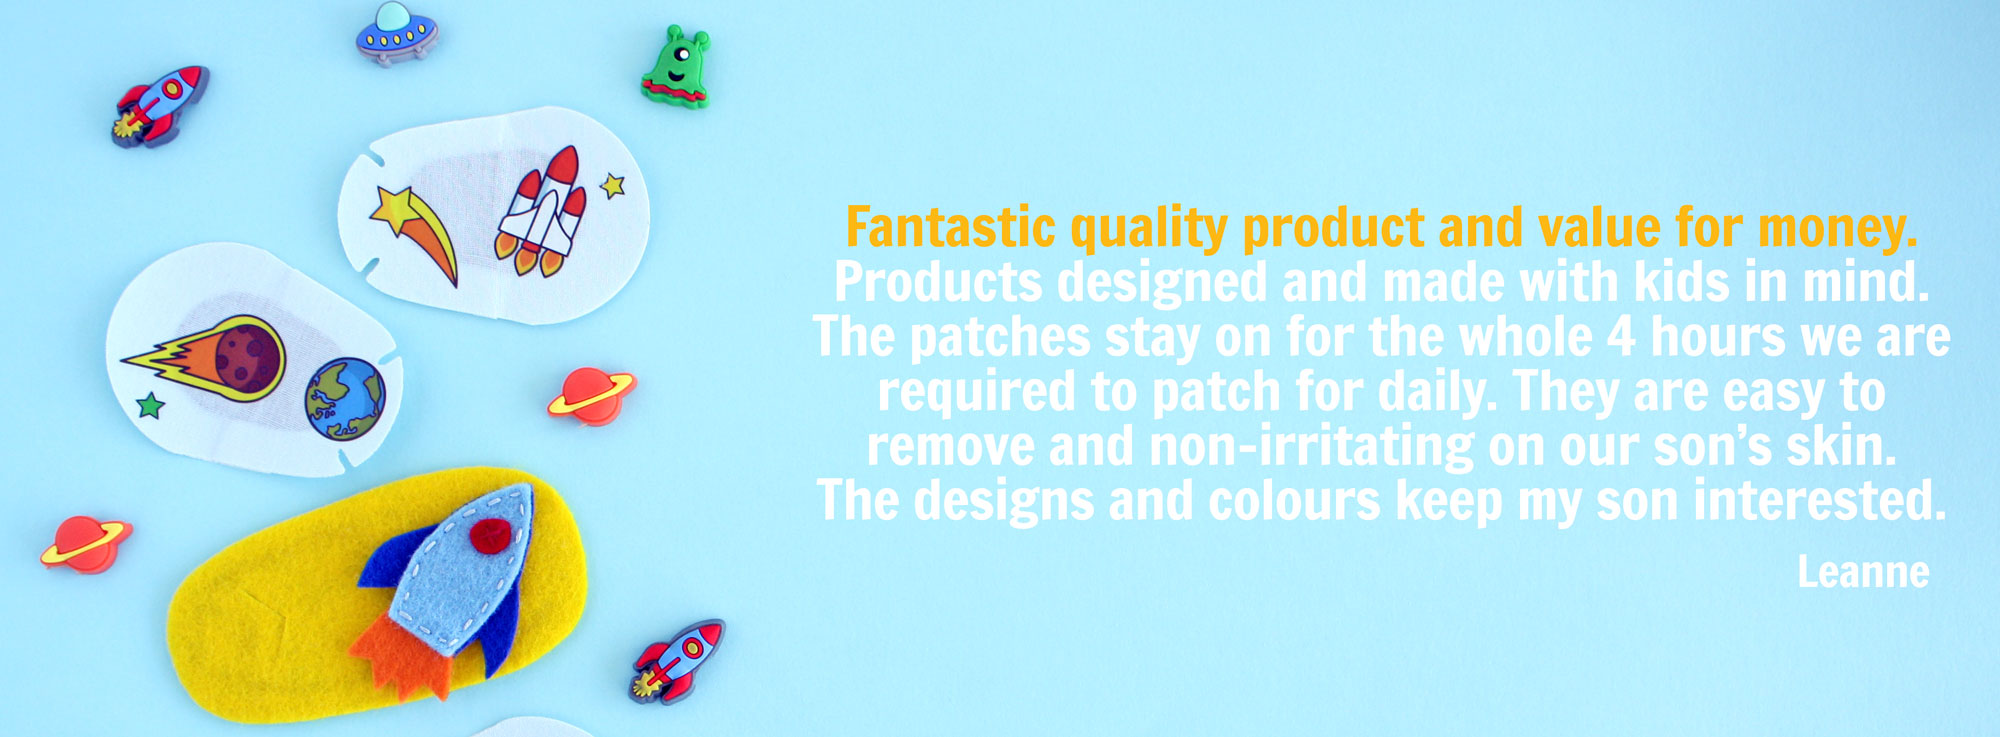 Best eye patches for kids testimonial